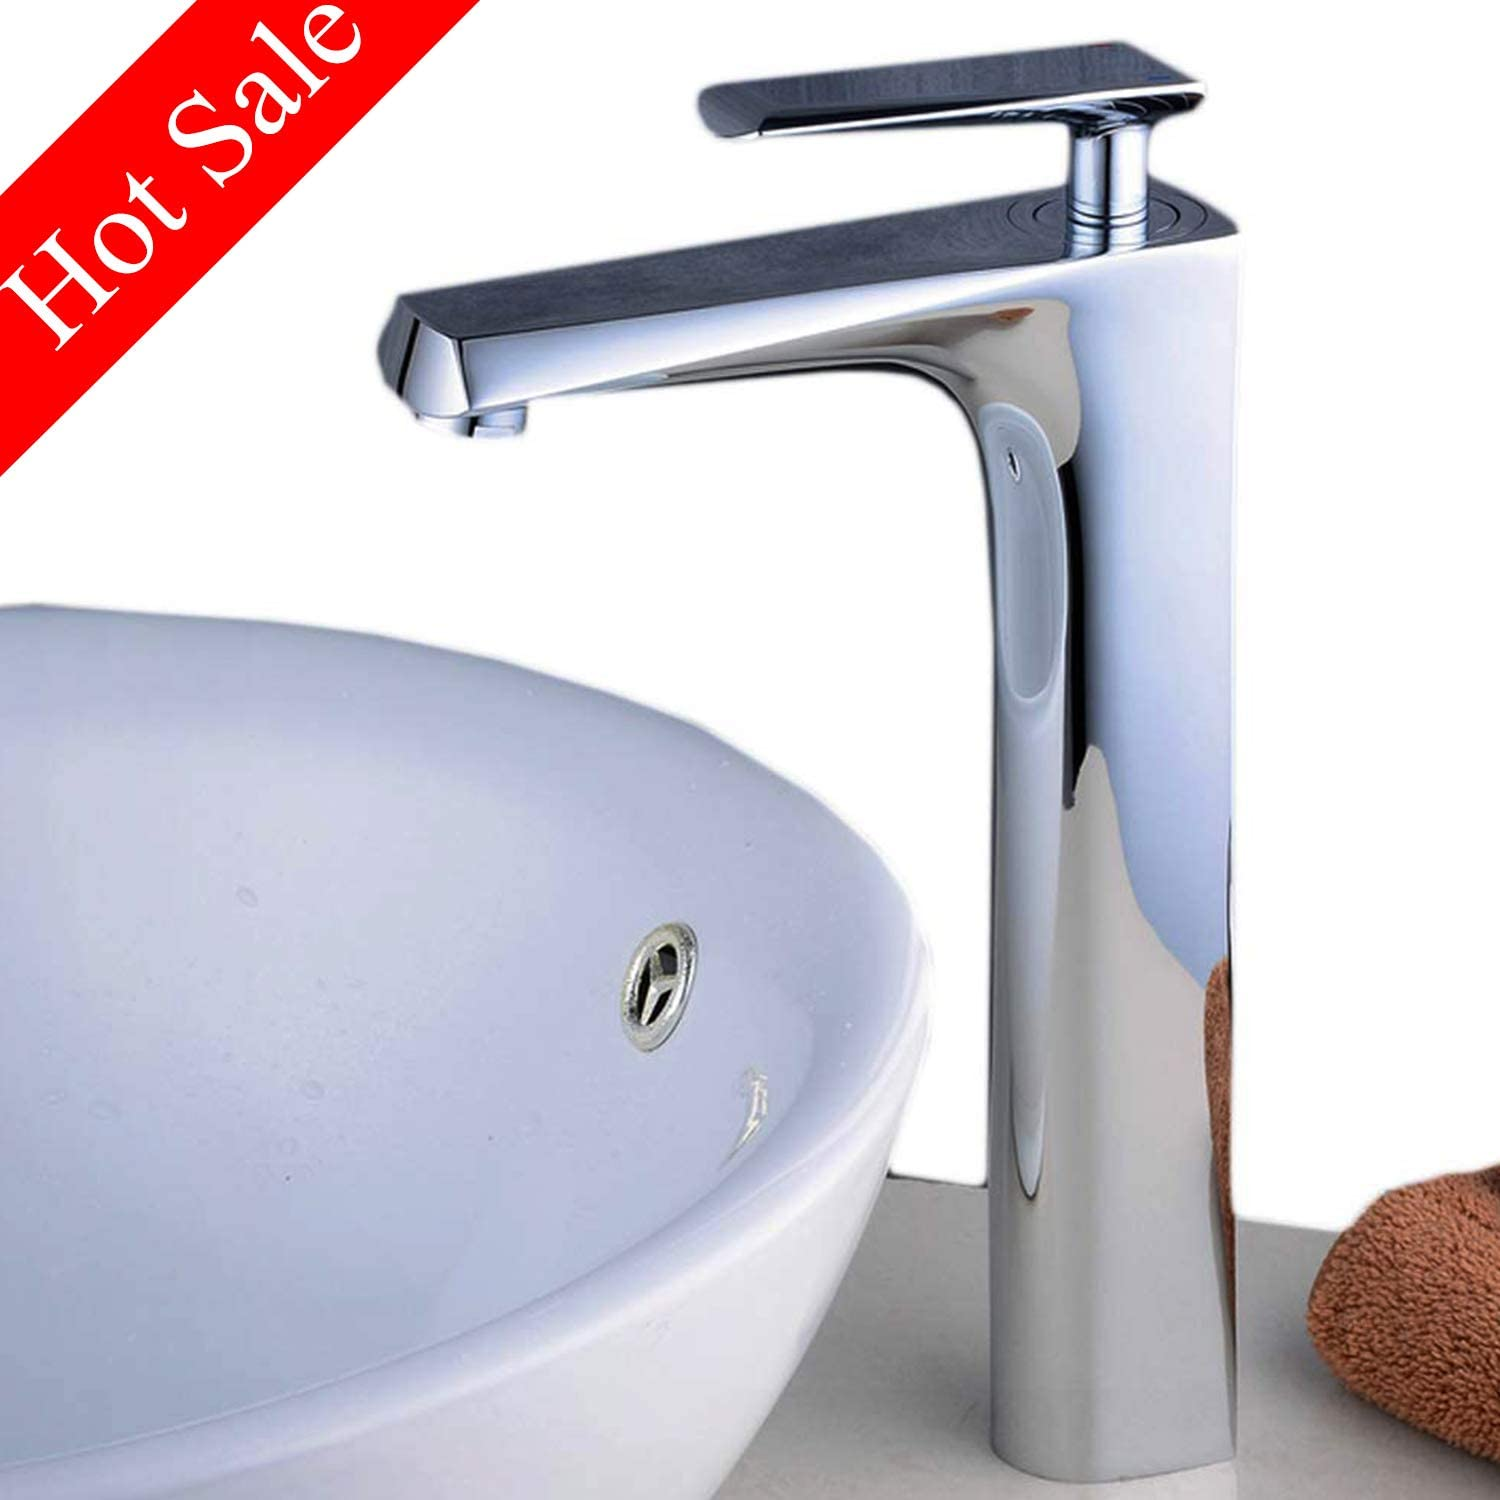 Tall Modern Bathroom Basin Mixer Taps Cabinet Sink Faucet Single Handle One Hole Chrome Taps